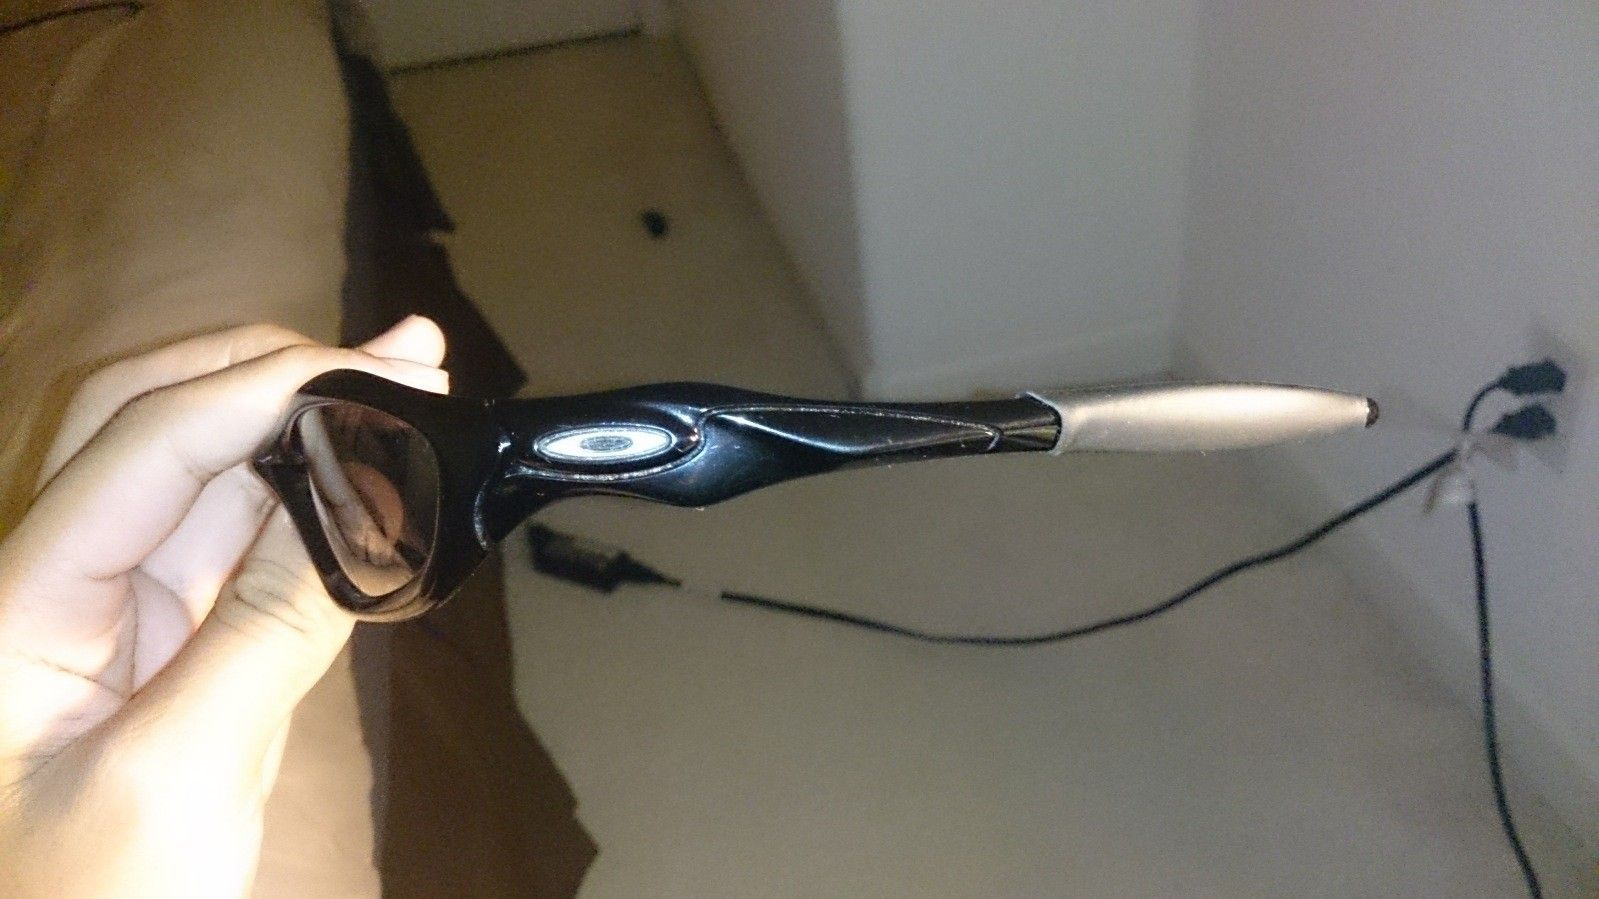 Replacing lenses, but couldn't identify the model - 25hcsp2.jpg